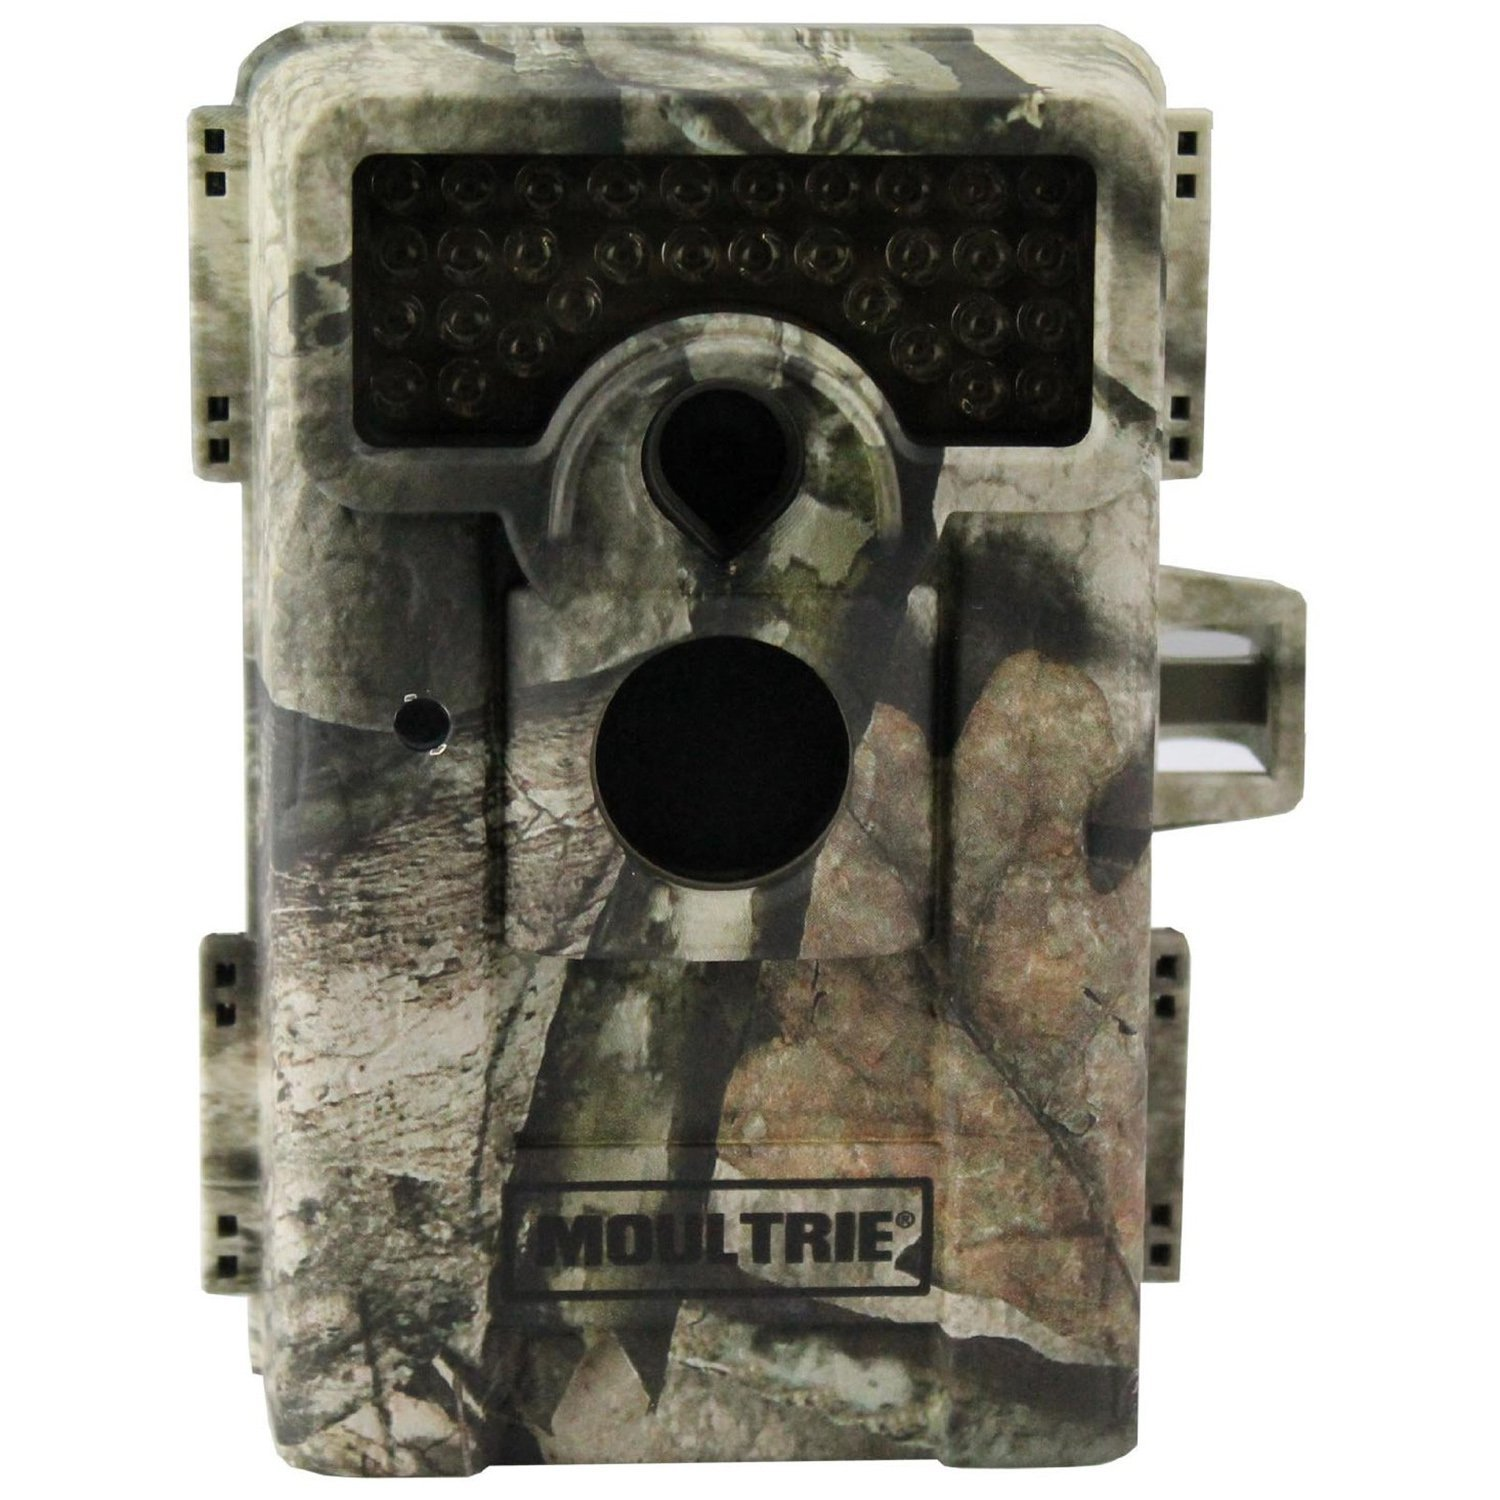 Amazon.com : Moultrie M-990i No Glow Game Camera : Spy Cameras ...